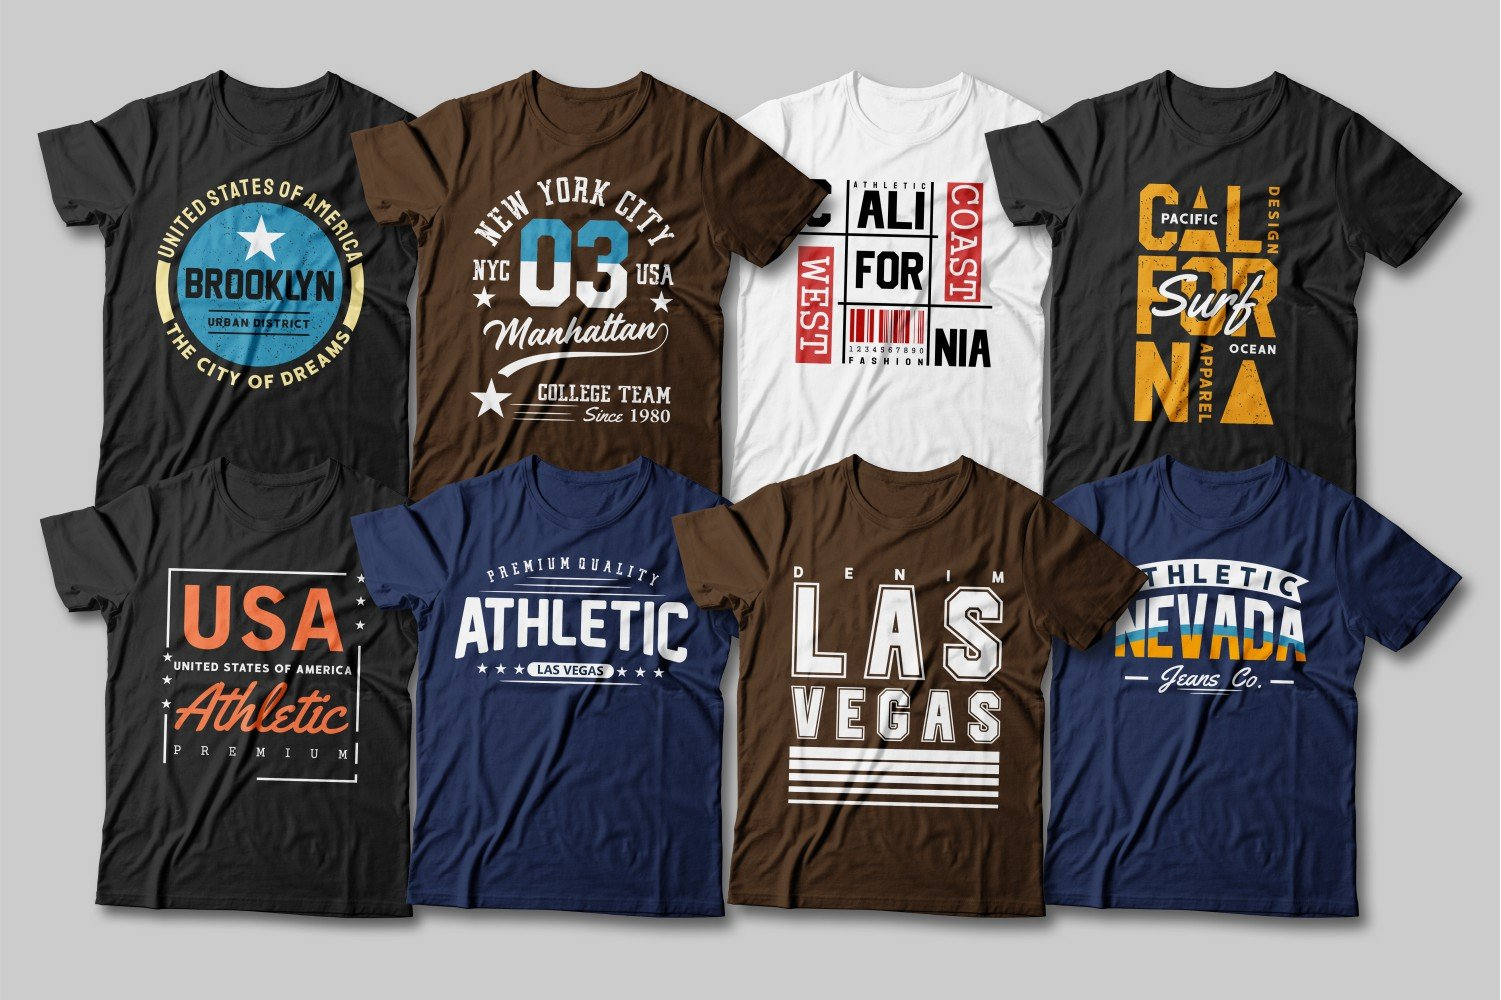 Brown, black and blue tees are at the heart of this collection.